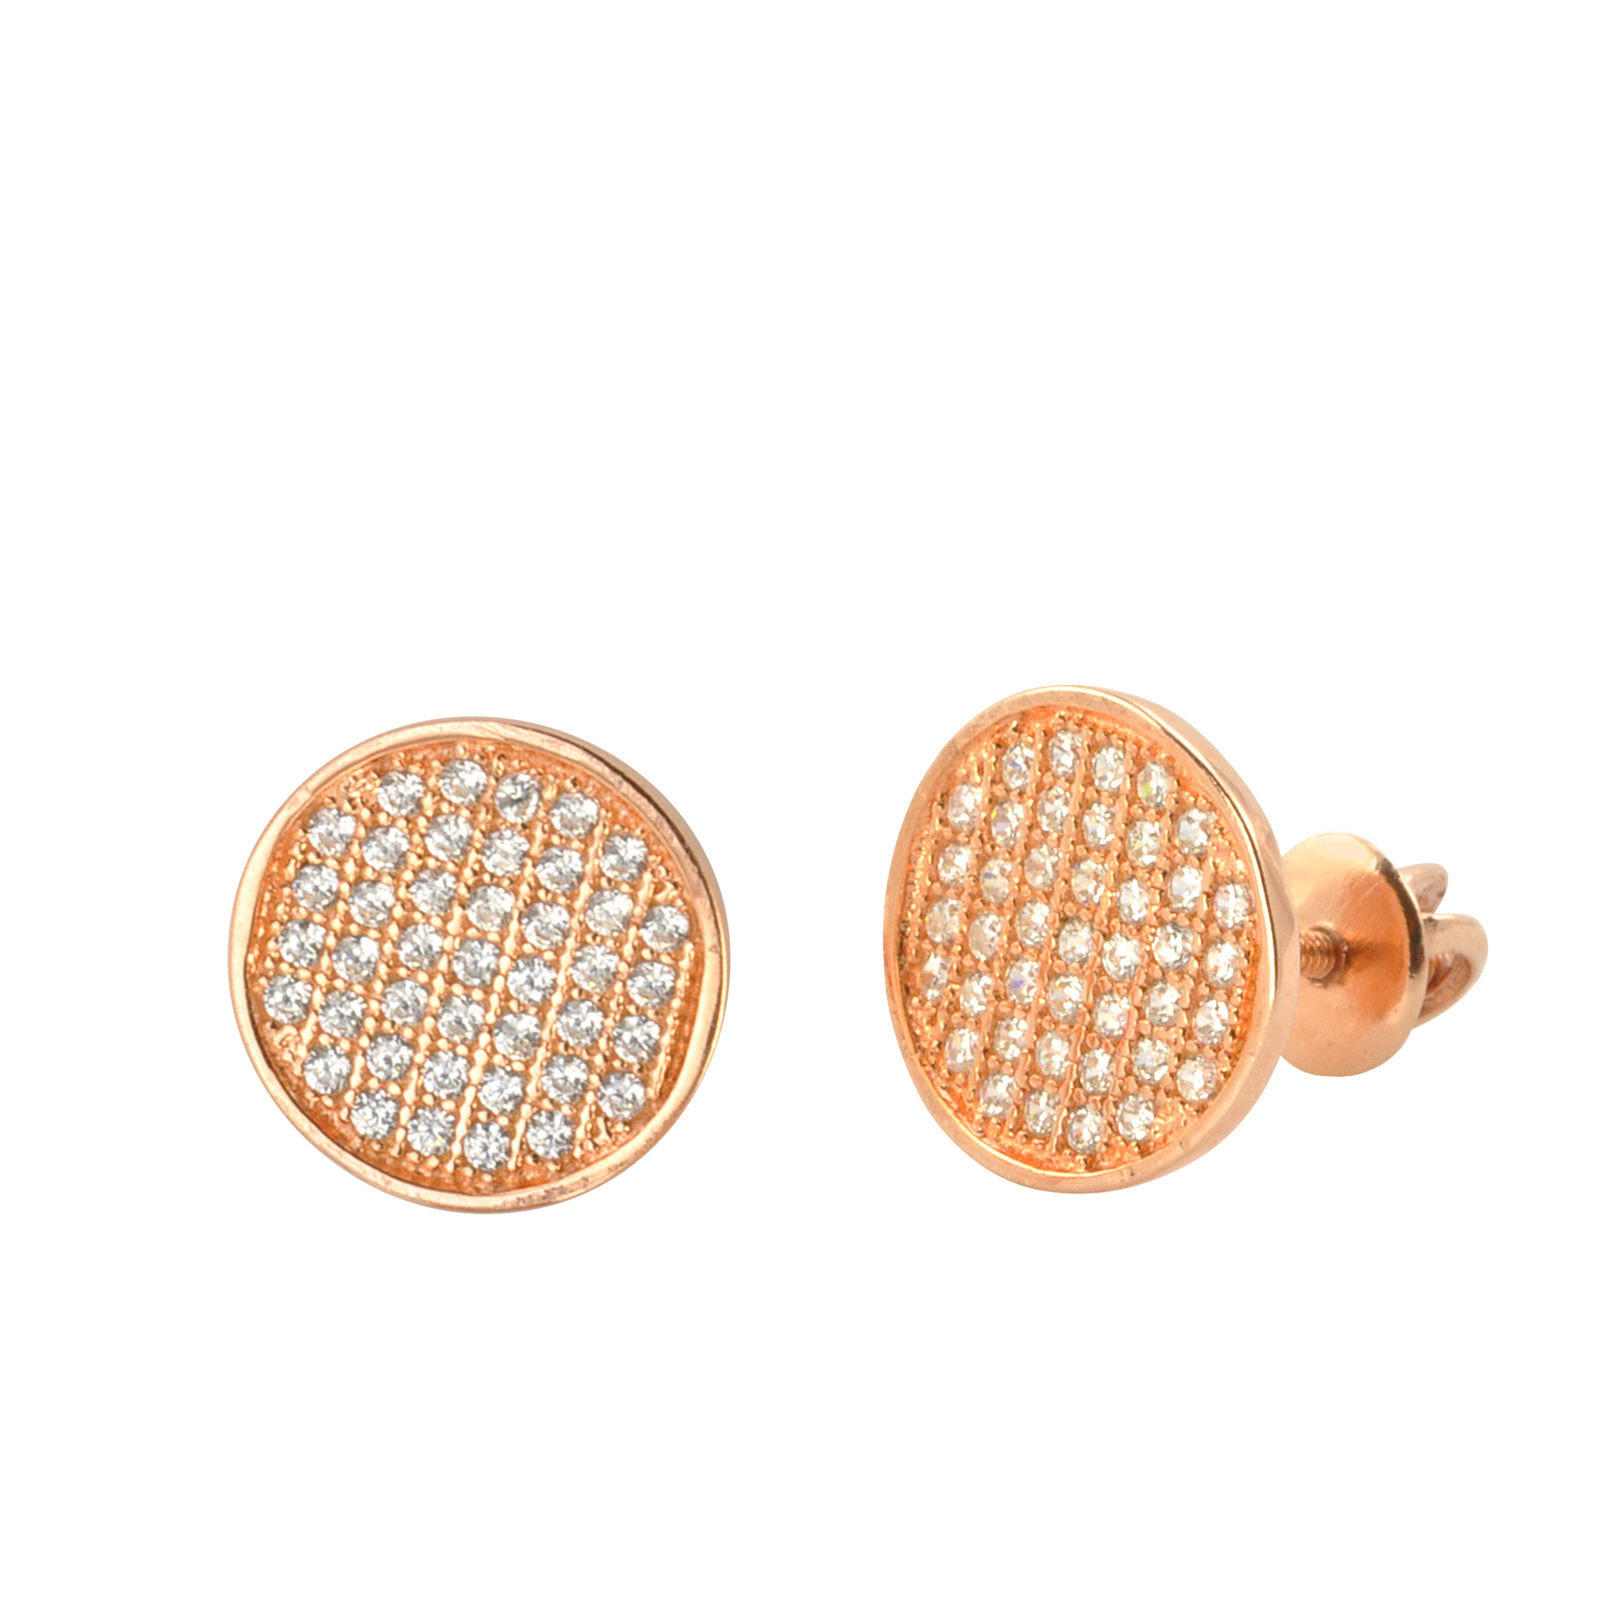 Sterling Silver Screw Back Earrings Rose Gold Plated Pave CZ Studs 10mm  Circle 1205e27e5